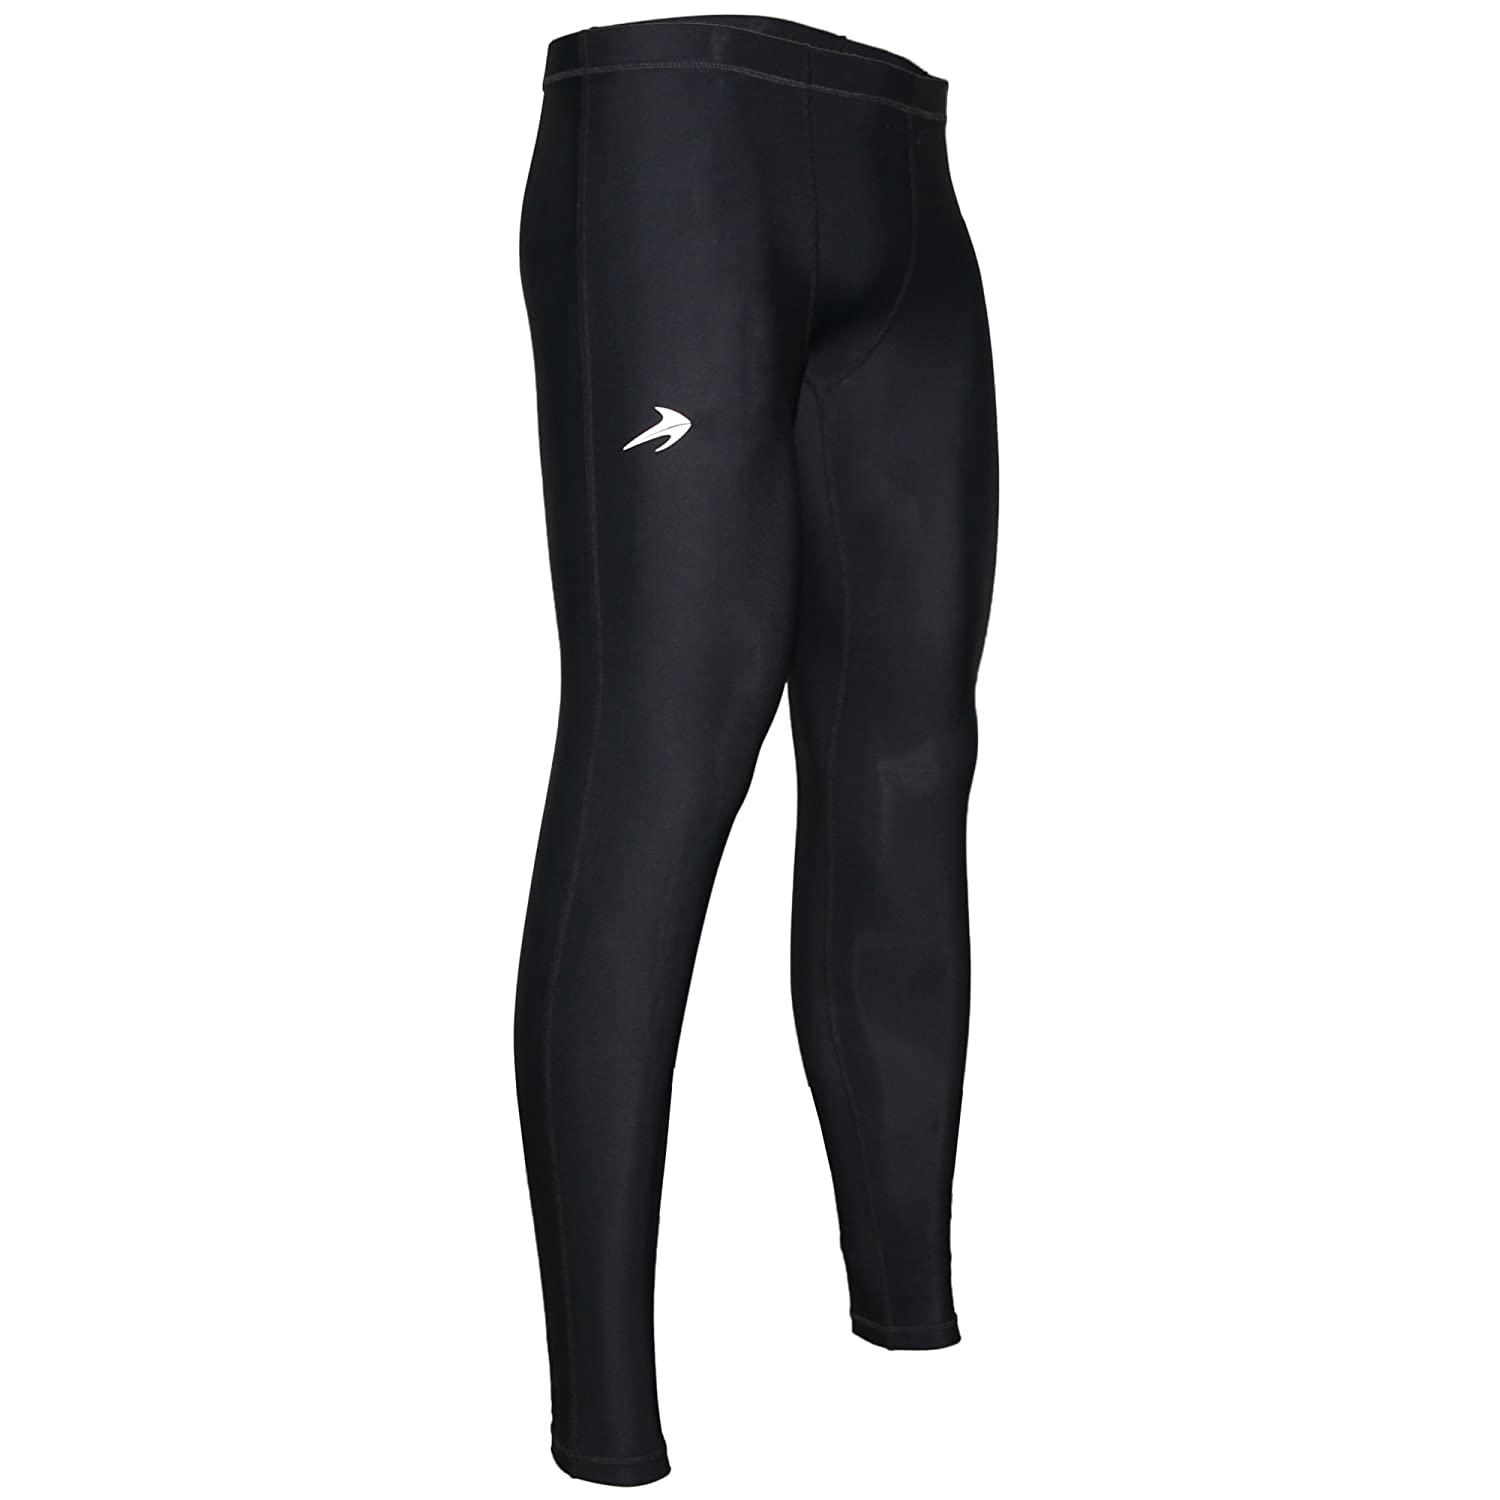 #3 CompressionZ Men's Pants